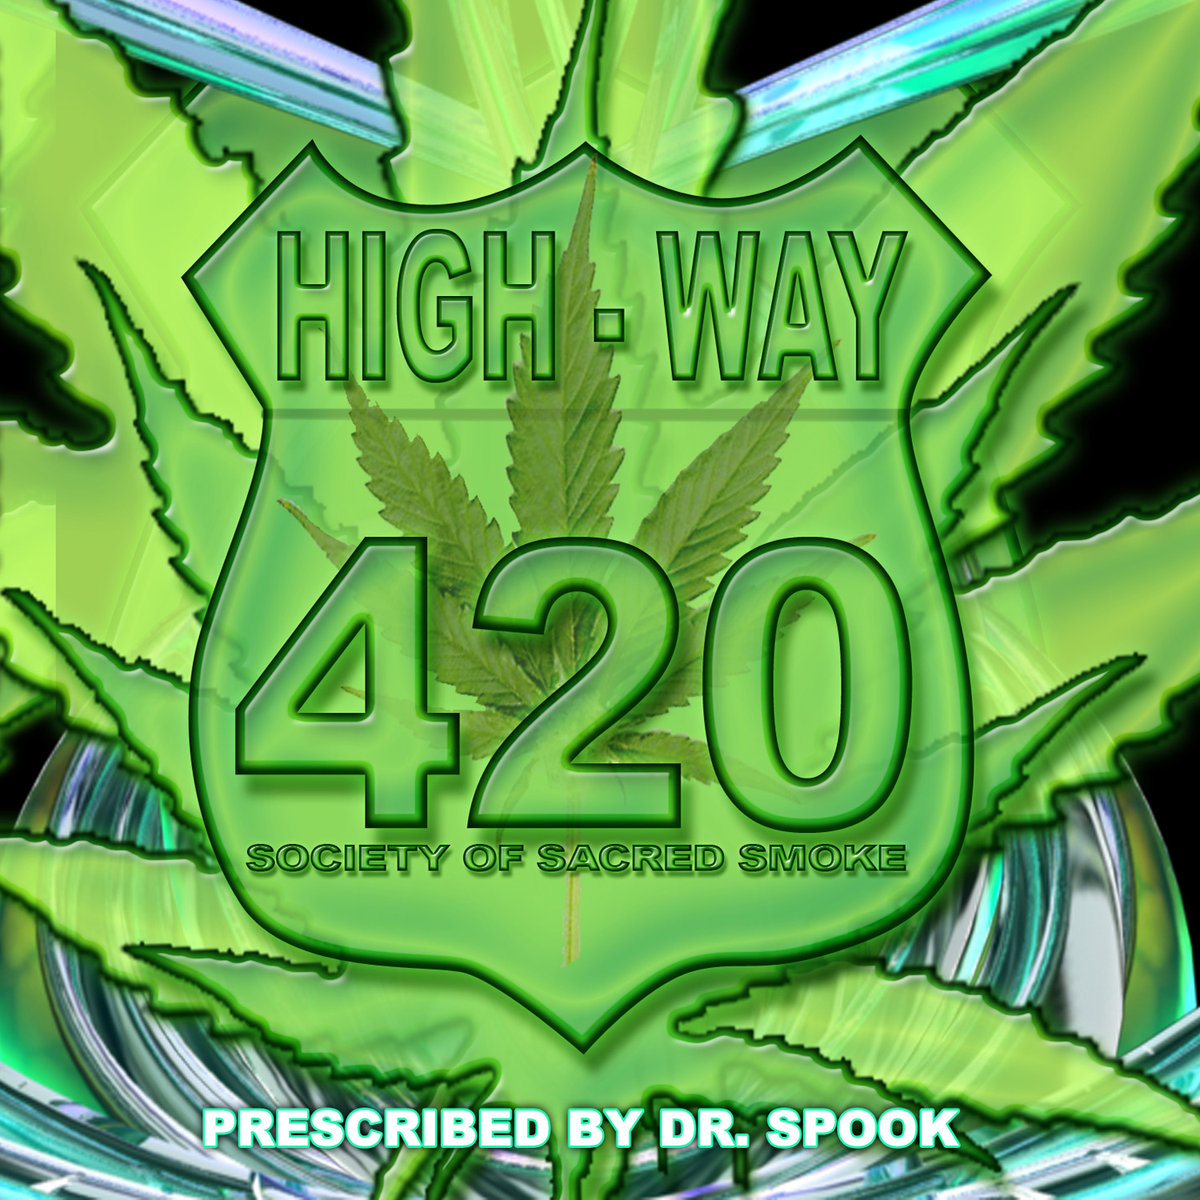 Shapestatic - Okie From Muskogee (Rmx) @ 'Various Artists - High-Way 420: Society Of Sacred Smoke (Prescribed by Dr. Spook)' album (electronic, goa)